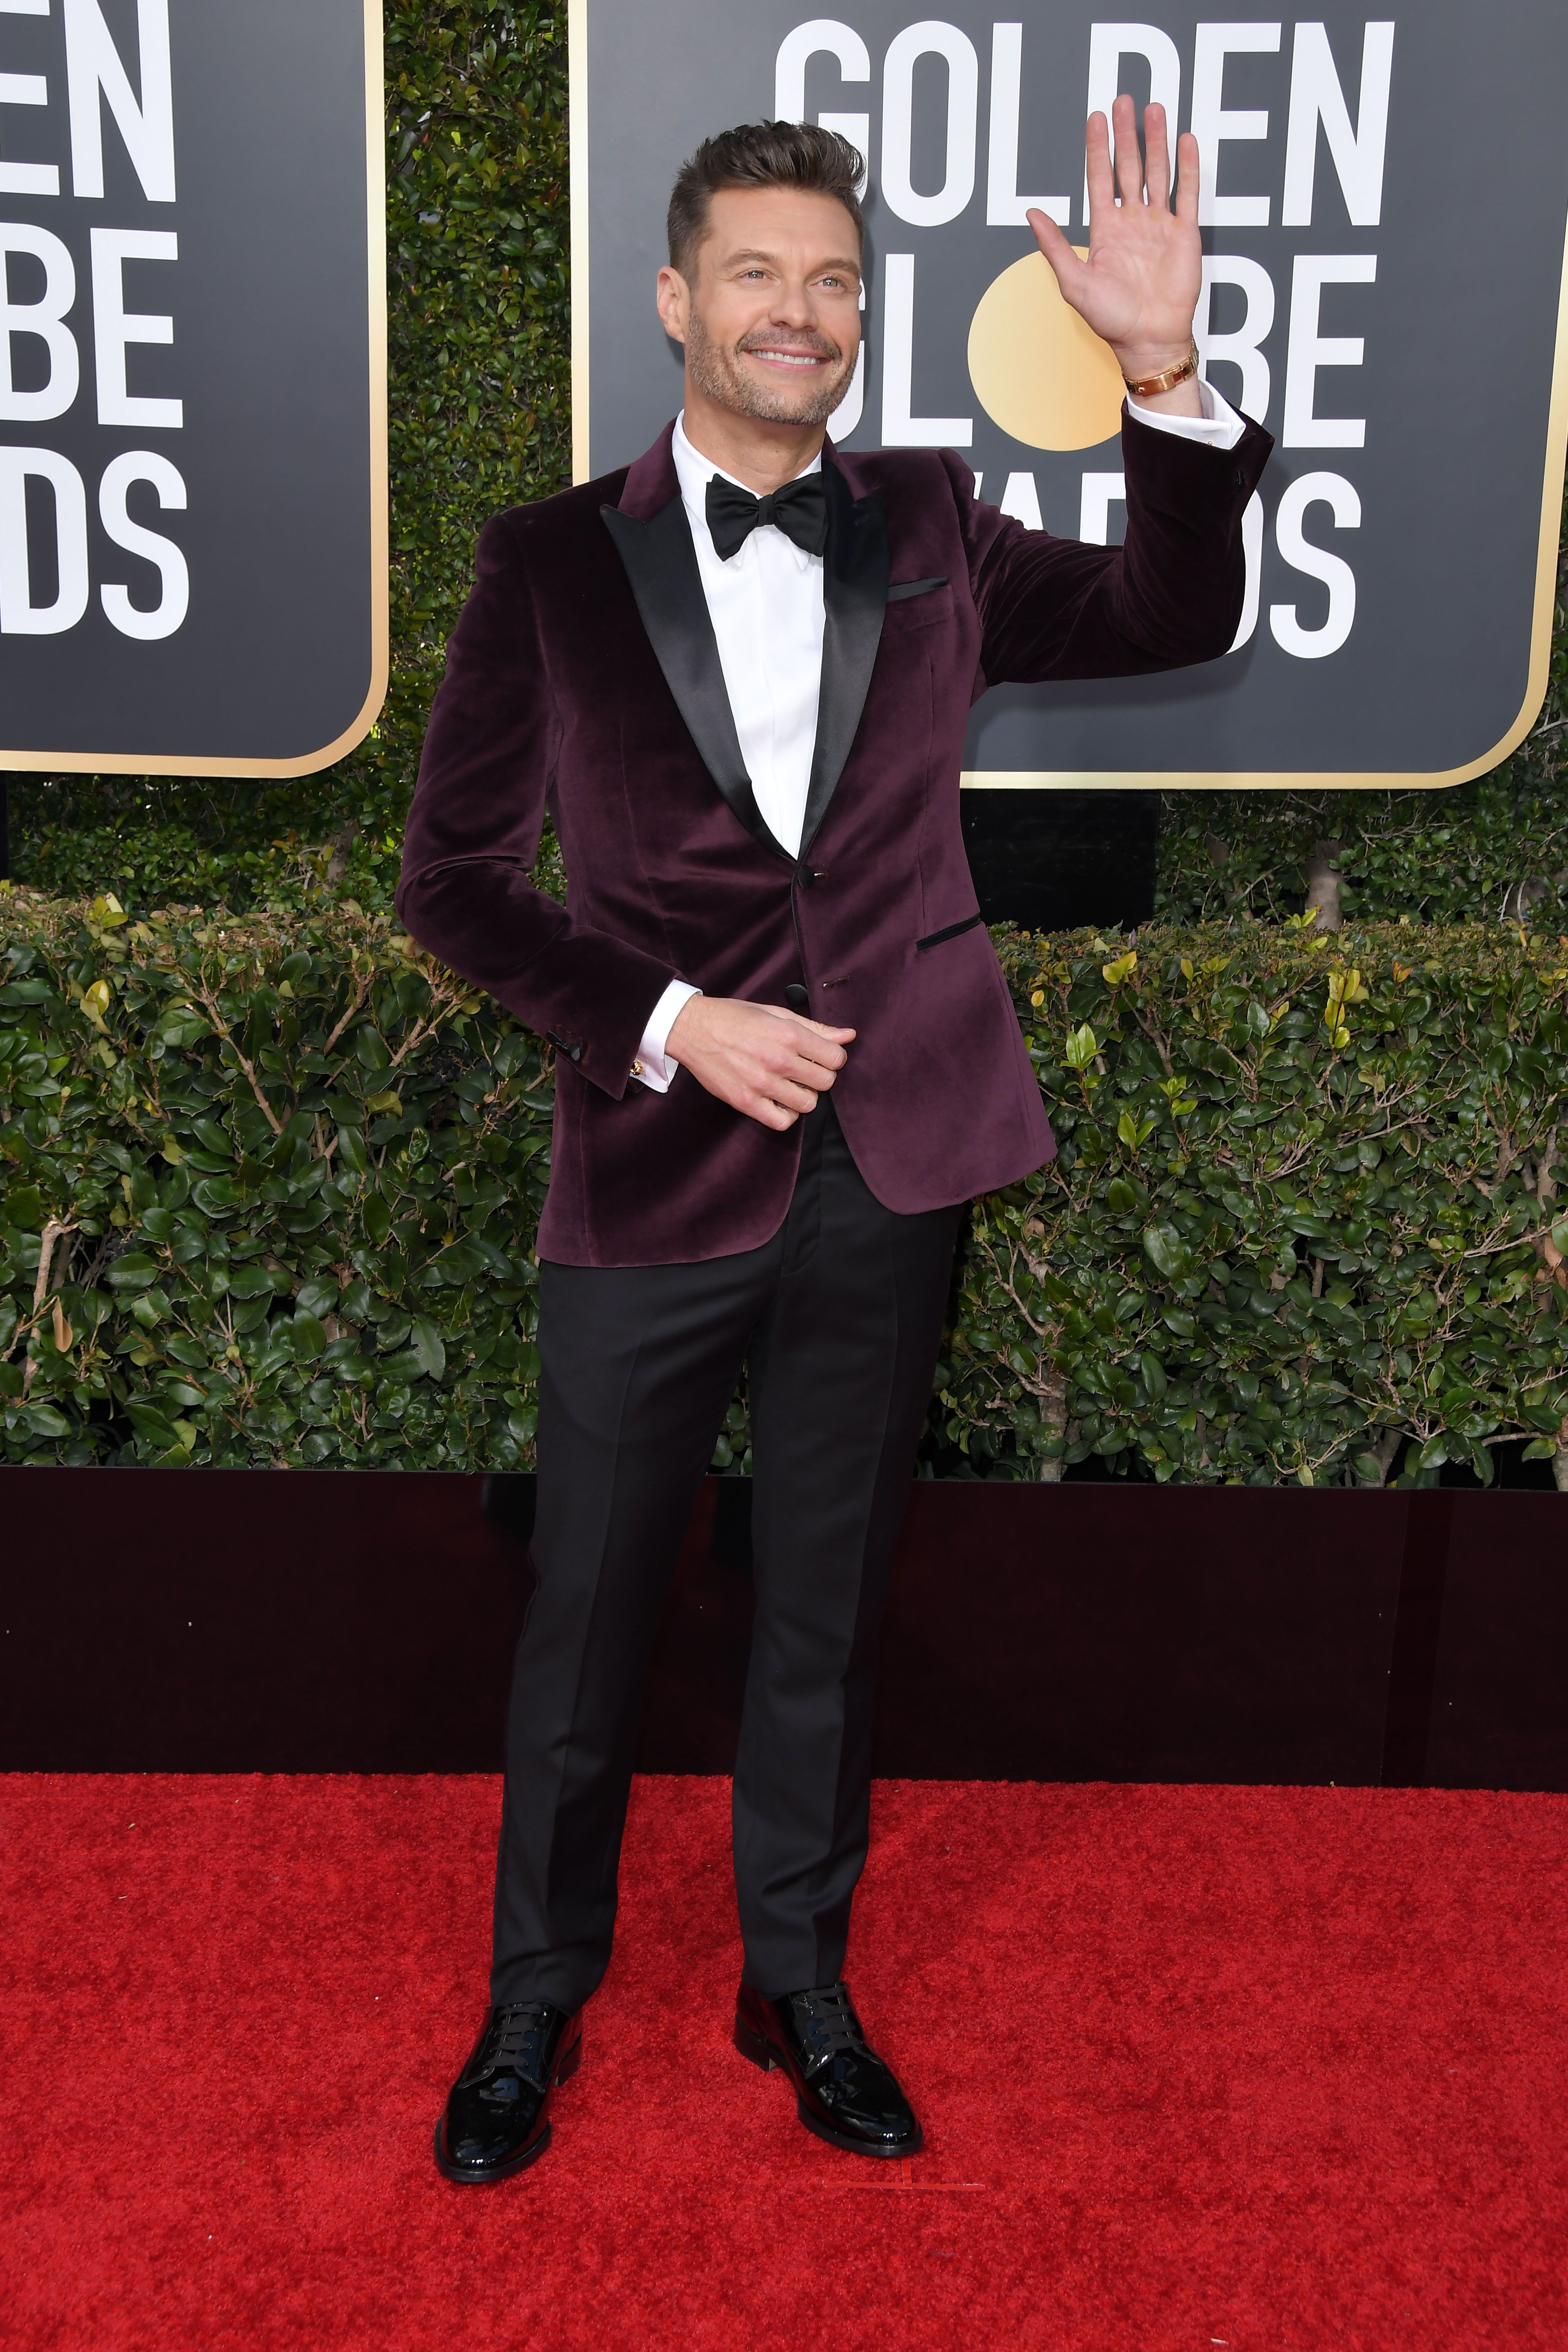 Ryan Seacrest at the 76th Golden Globe Awards during the red carpet arrivals held at the Beverly Hilton on January 6, 2019 in Beverly Hills, CA. (Photo by Sthanlee Mirador/Sipa USA)